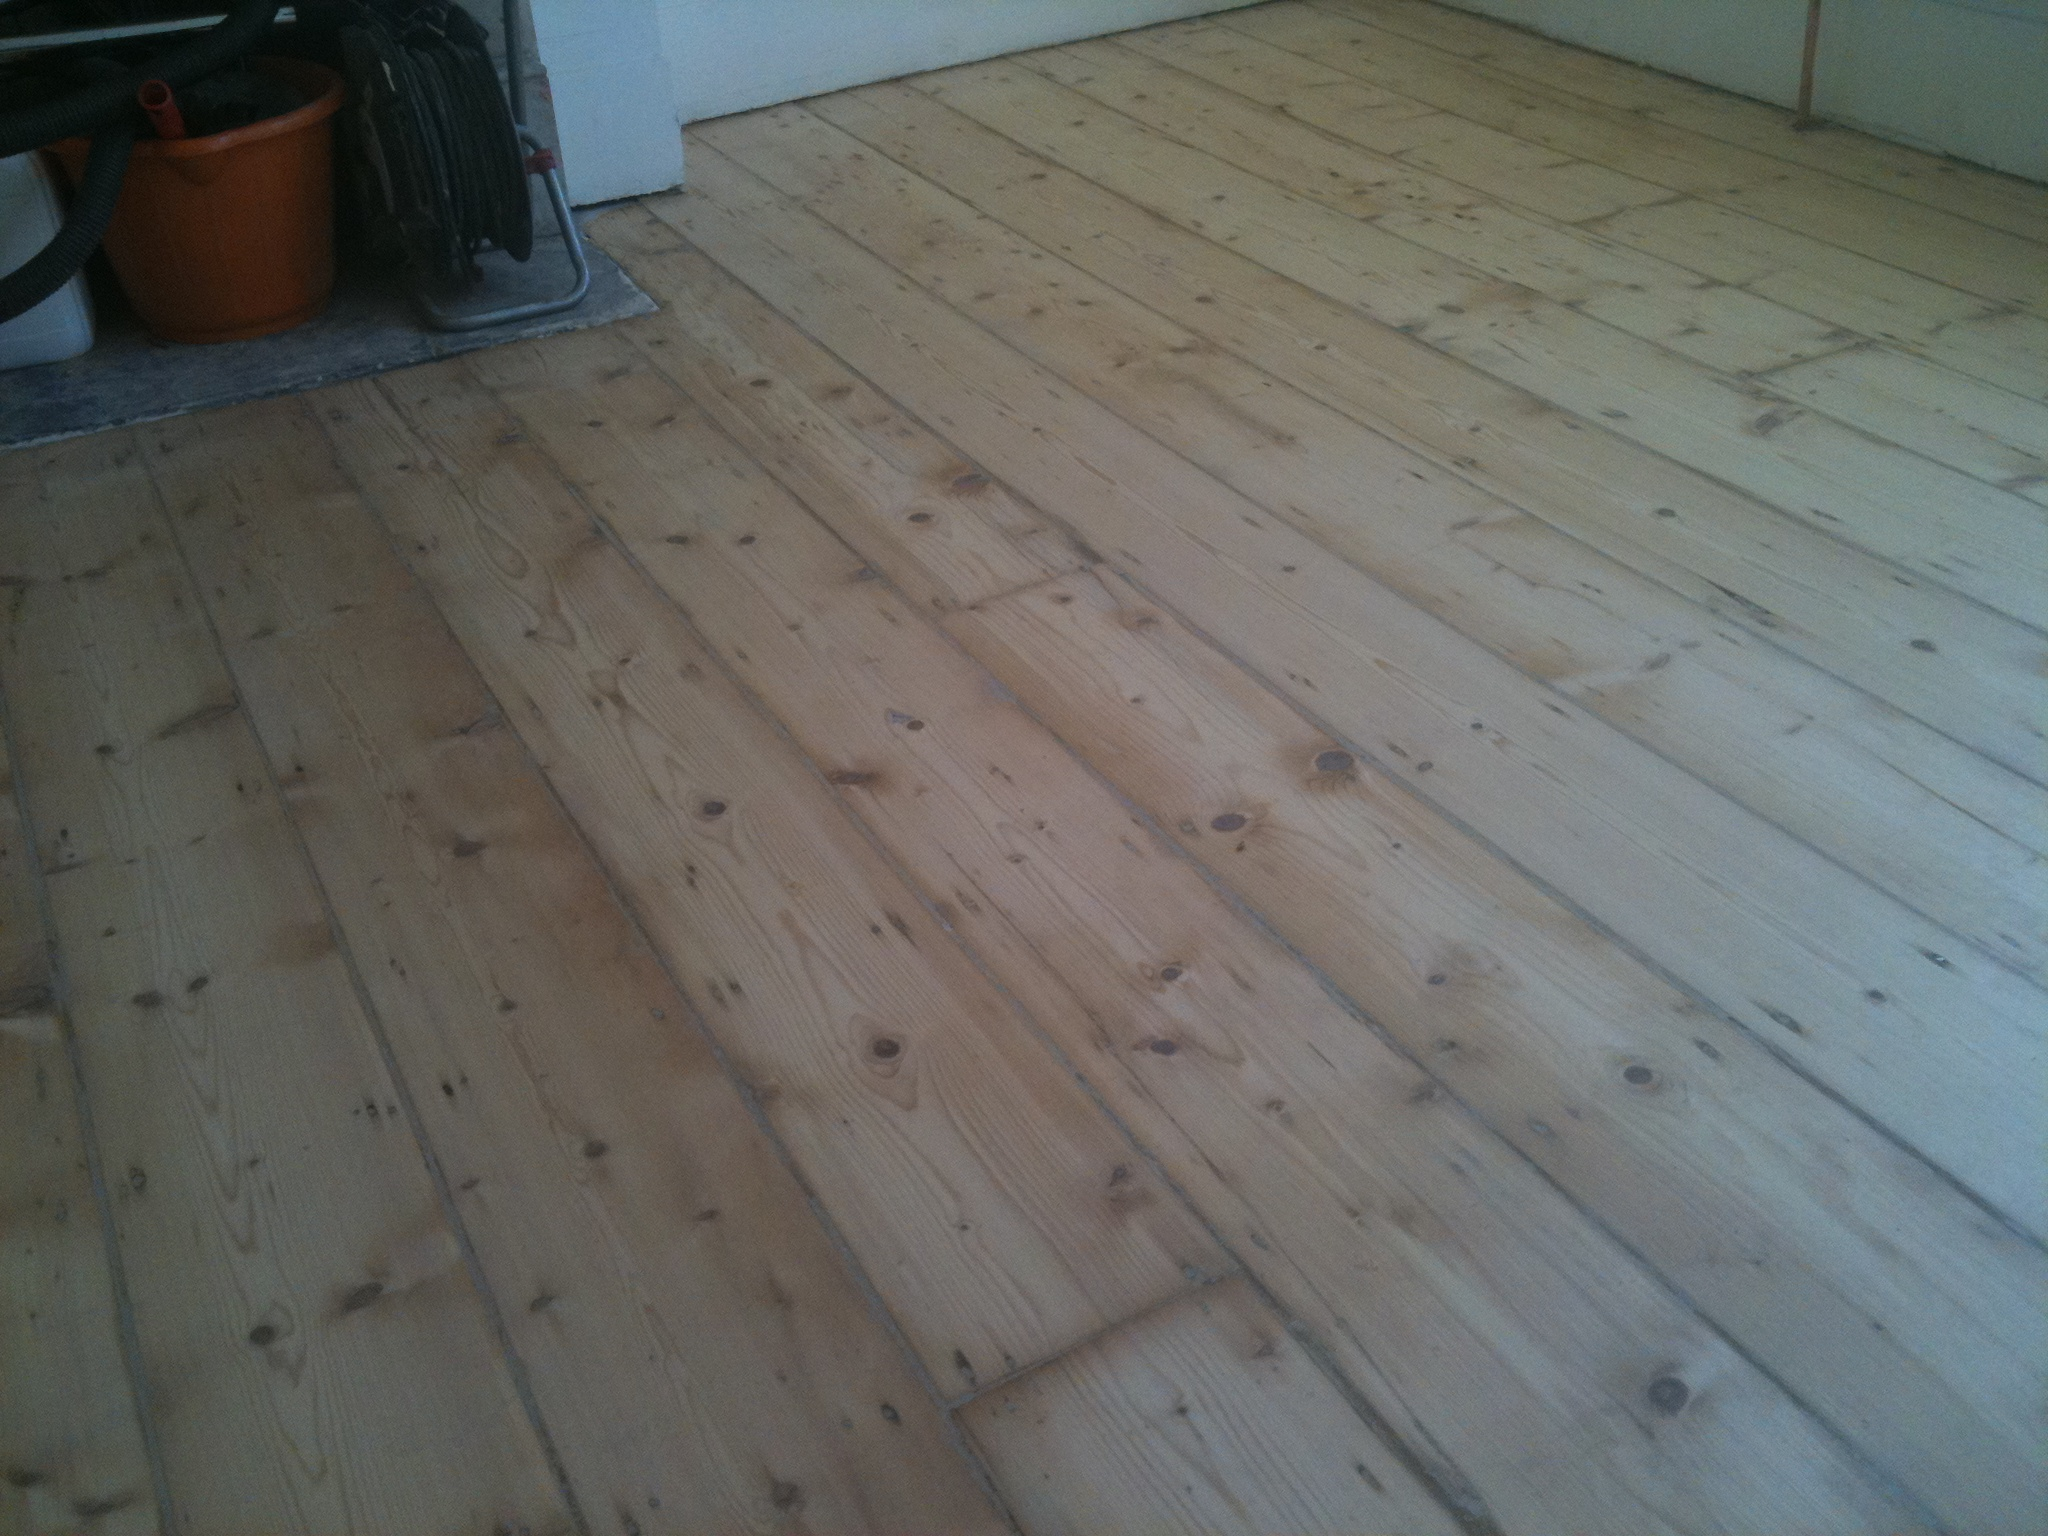 Floor Staining And Gap Filling